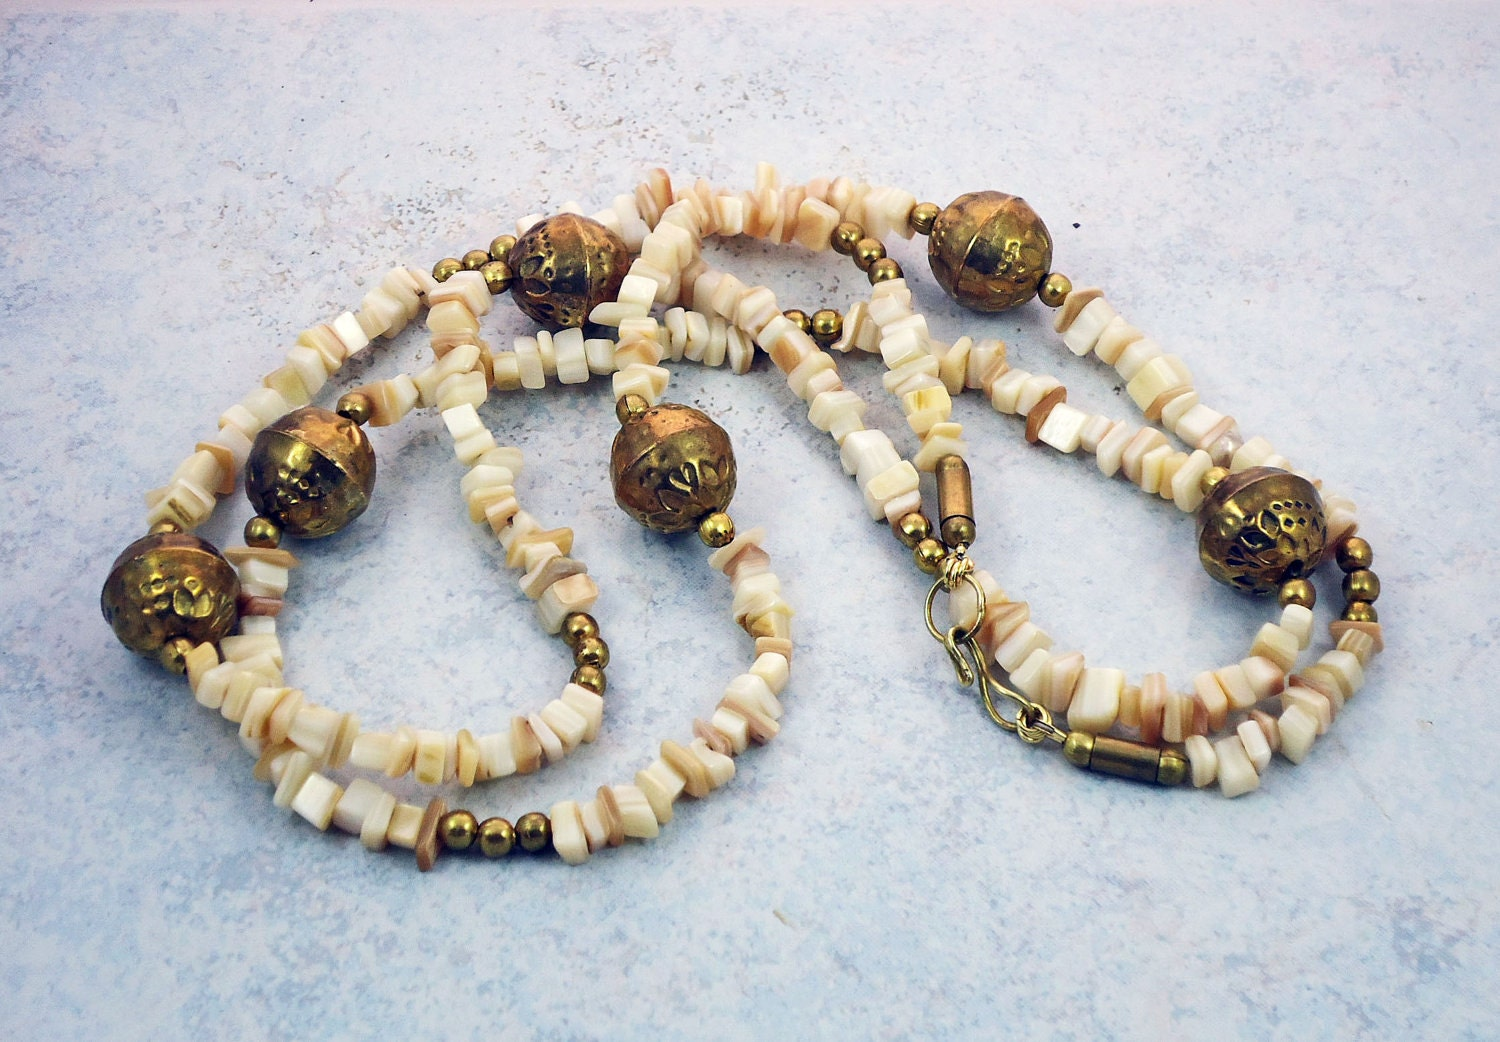 Vintage Brass Beads Shells Necklace - TinksTreasure